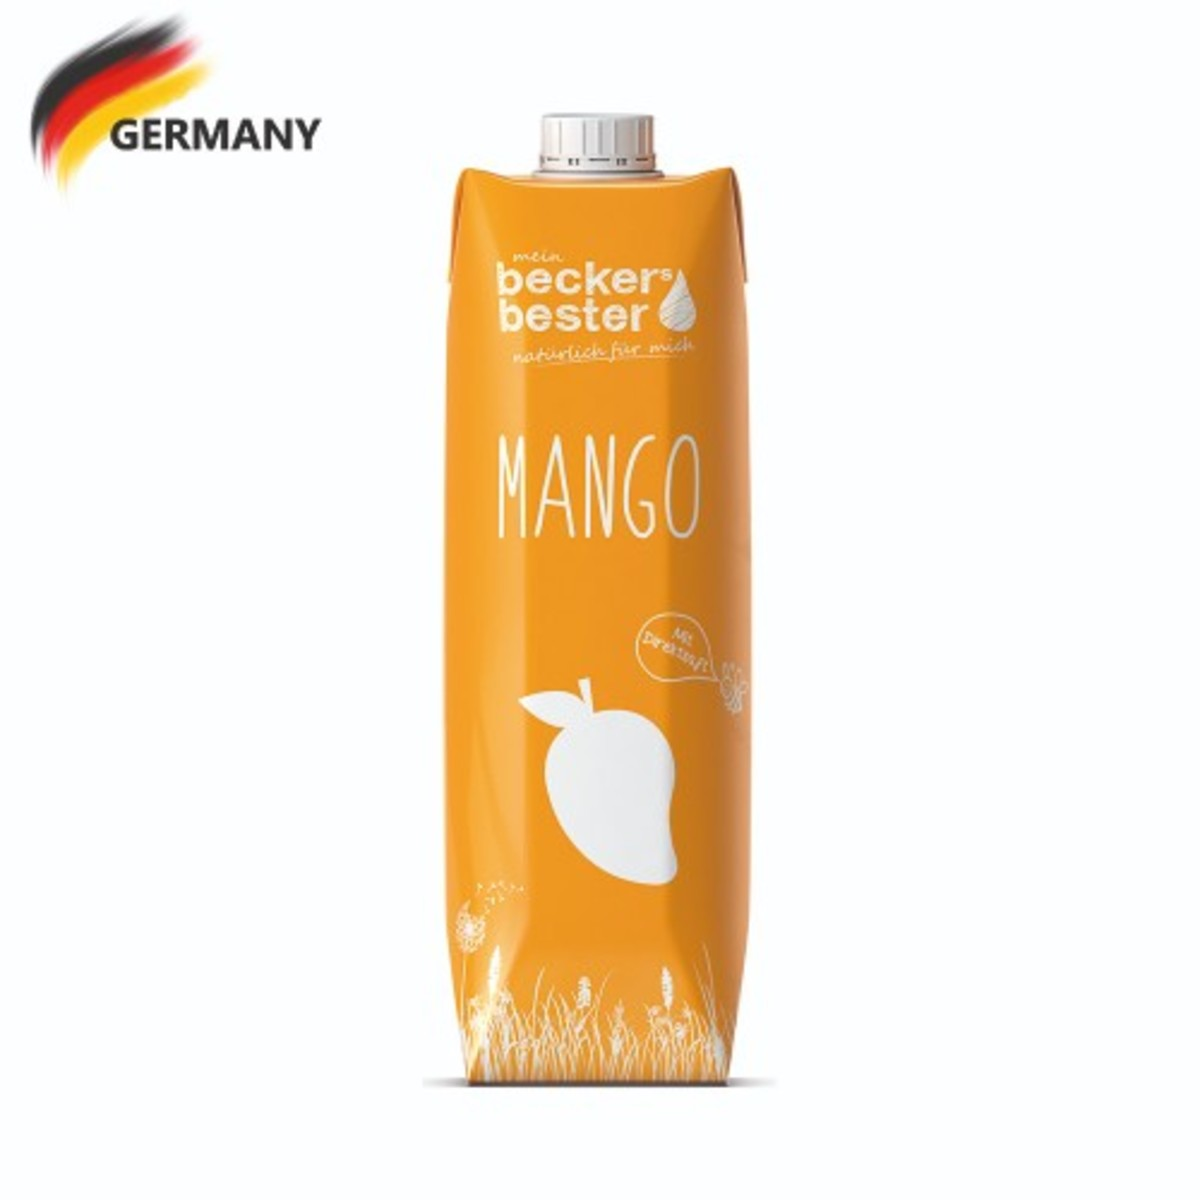 Direct Pressed Mango Nectar (Not-From-Concentrate) 1L